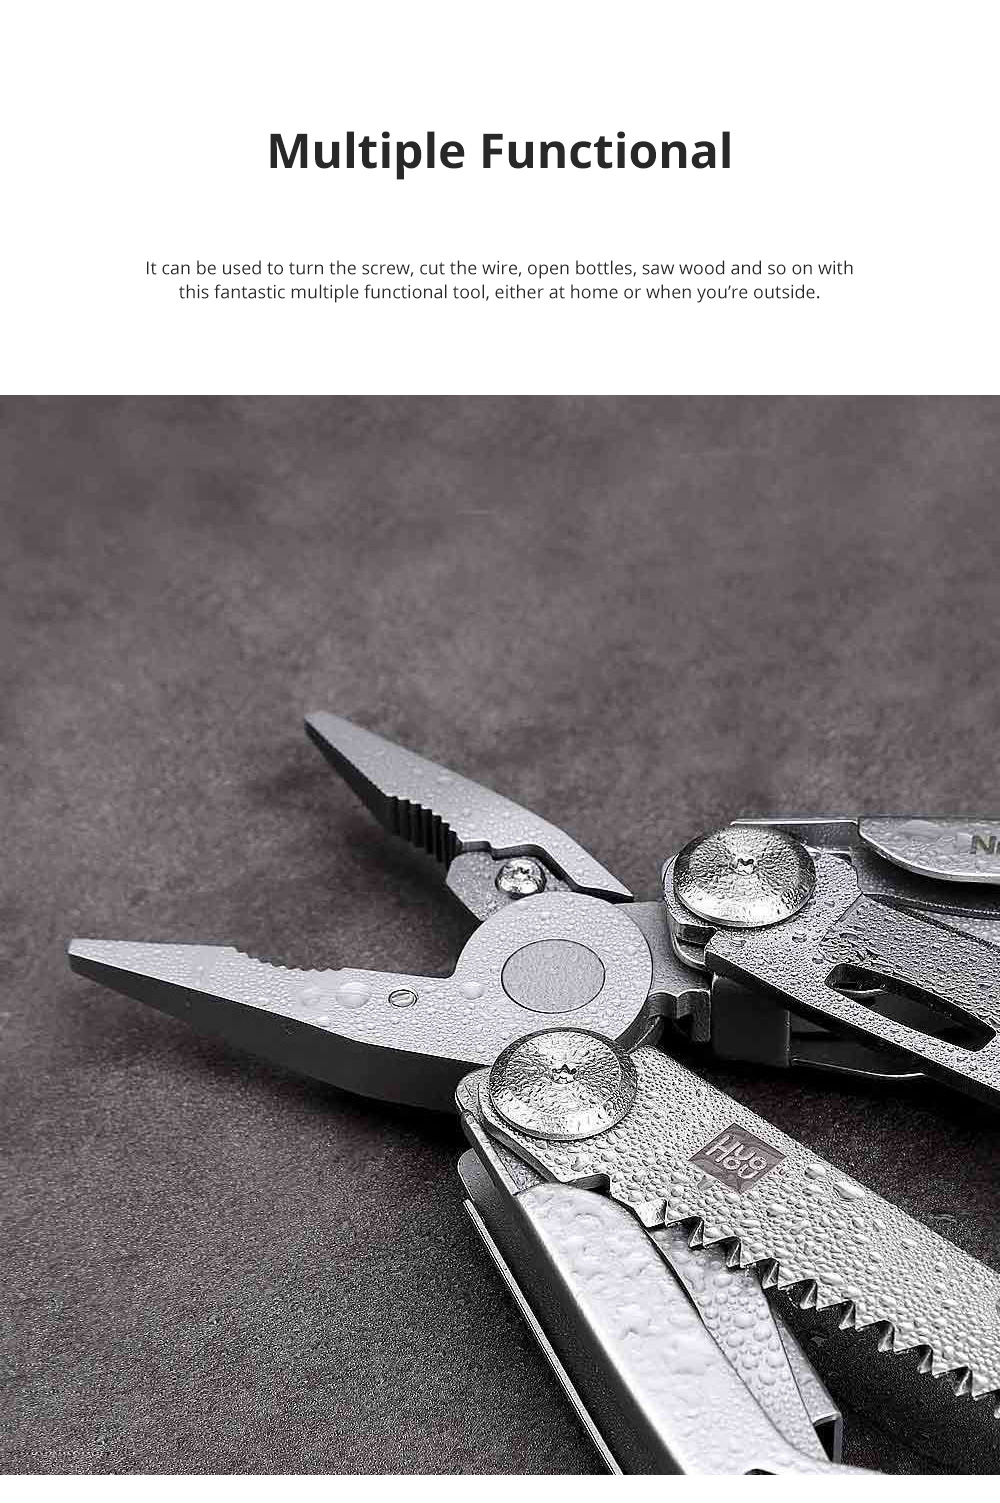 Xiaomi Huohou High Quality Multiple Functional Foldable Knife Tools Portable Durable Mini-sized Scissors Pliers with 15 Functions 1